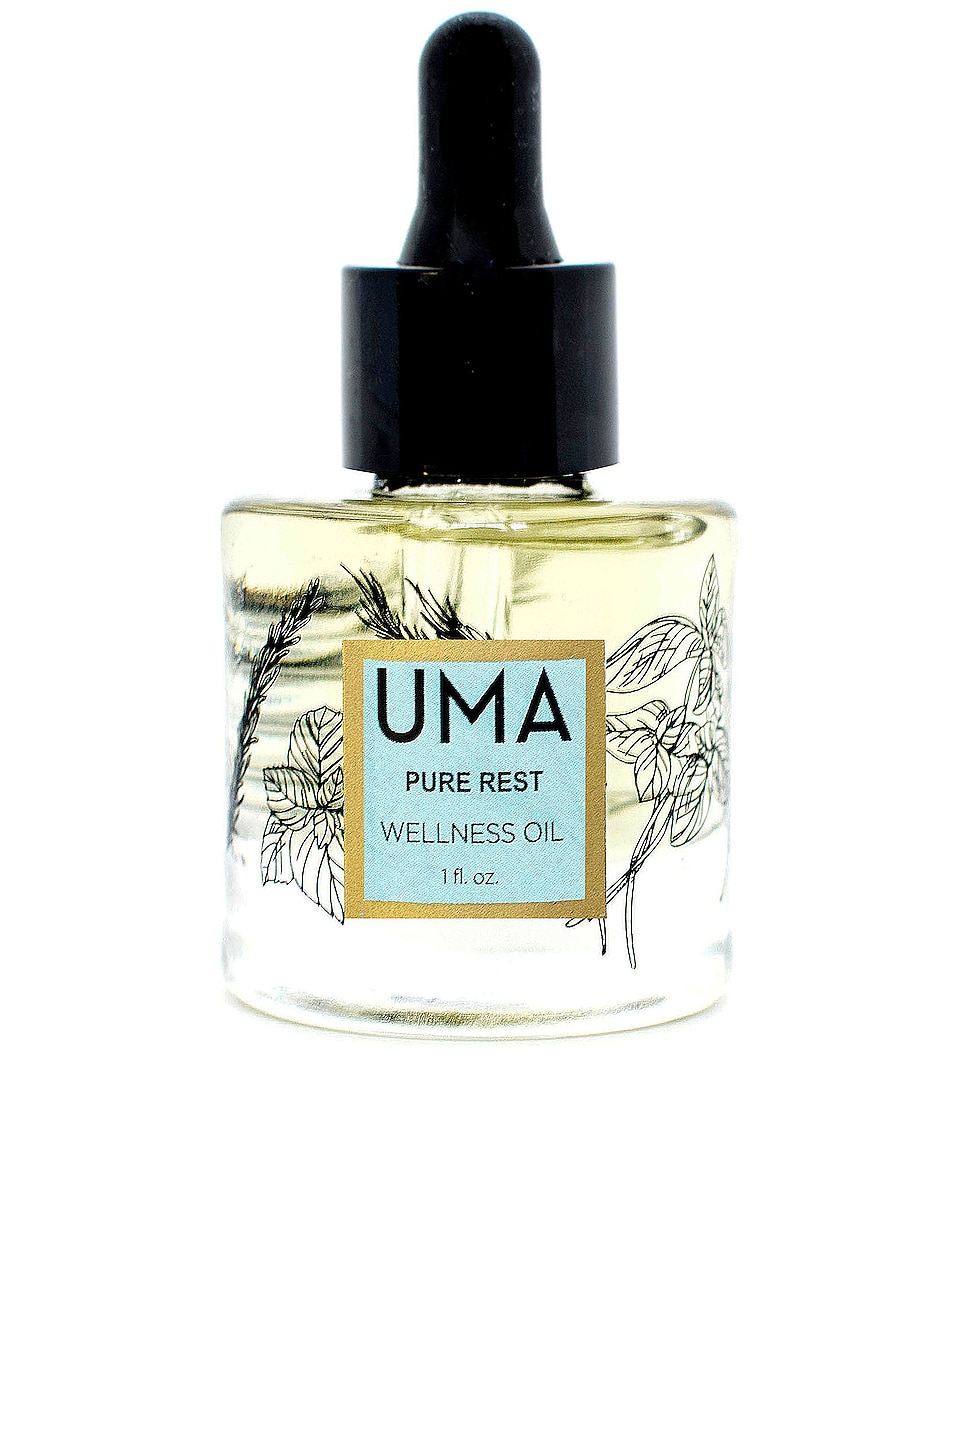 UMA Pure Rest Wellness Oil